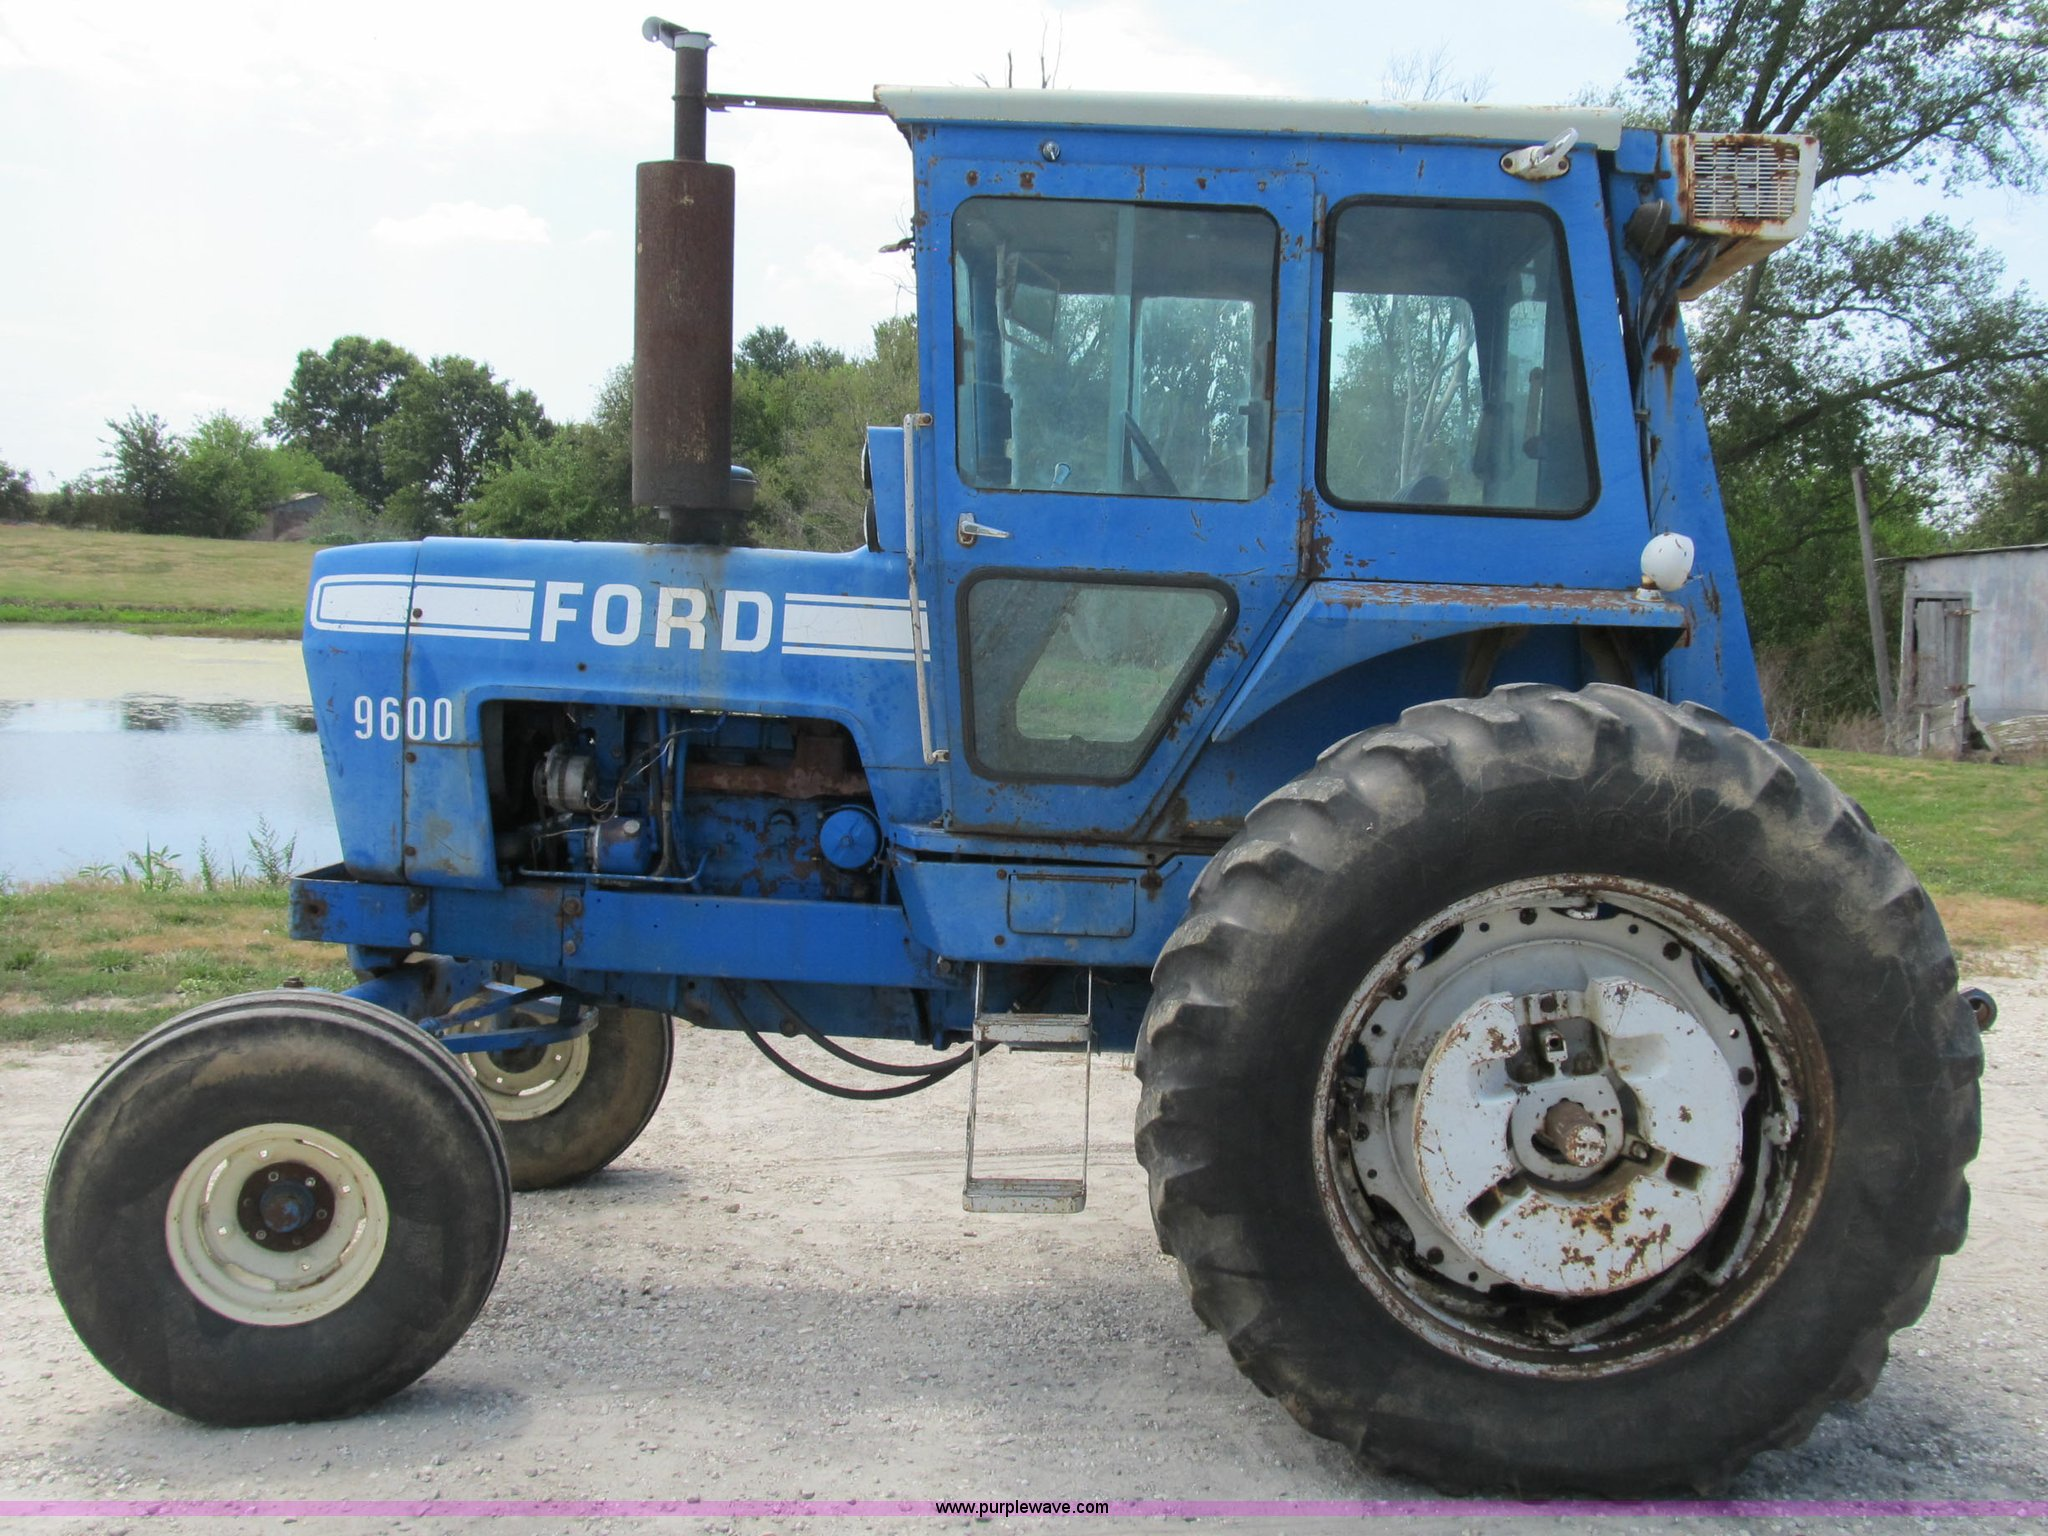 ... 1976 Ford 9600 row crop tractor Full size in new window ...